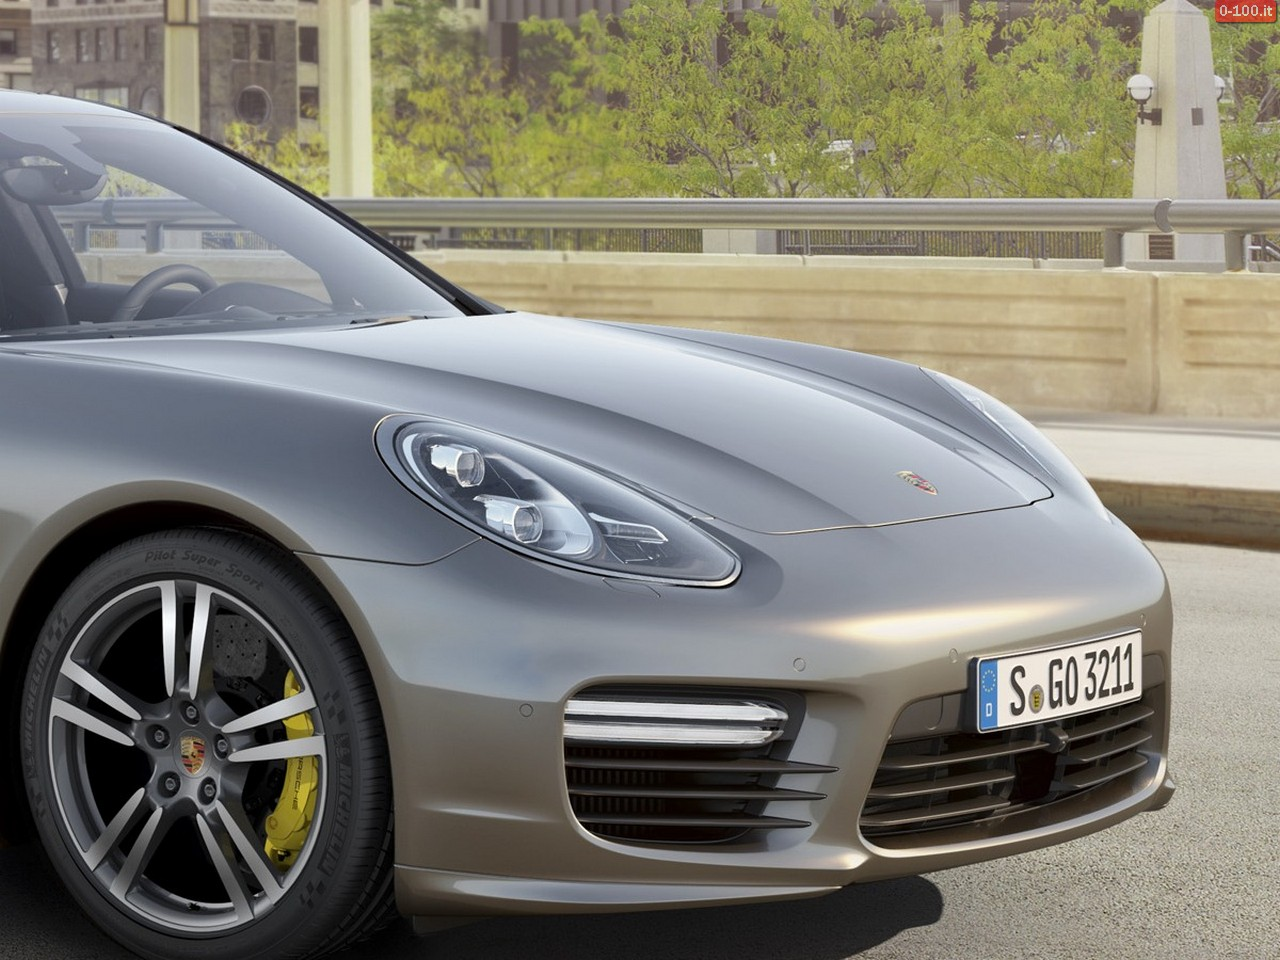 porsche-panamera-turbo-s-exclusive_0-100_7